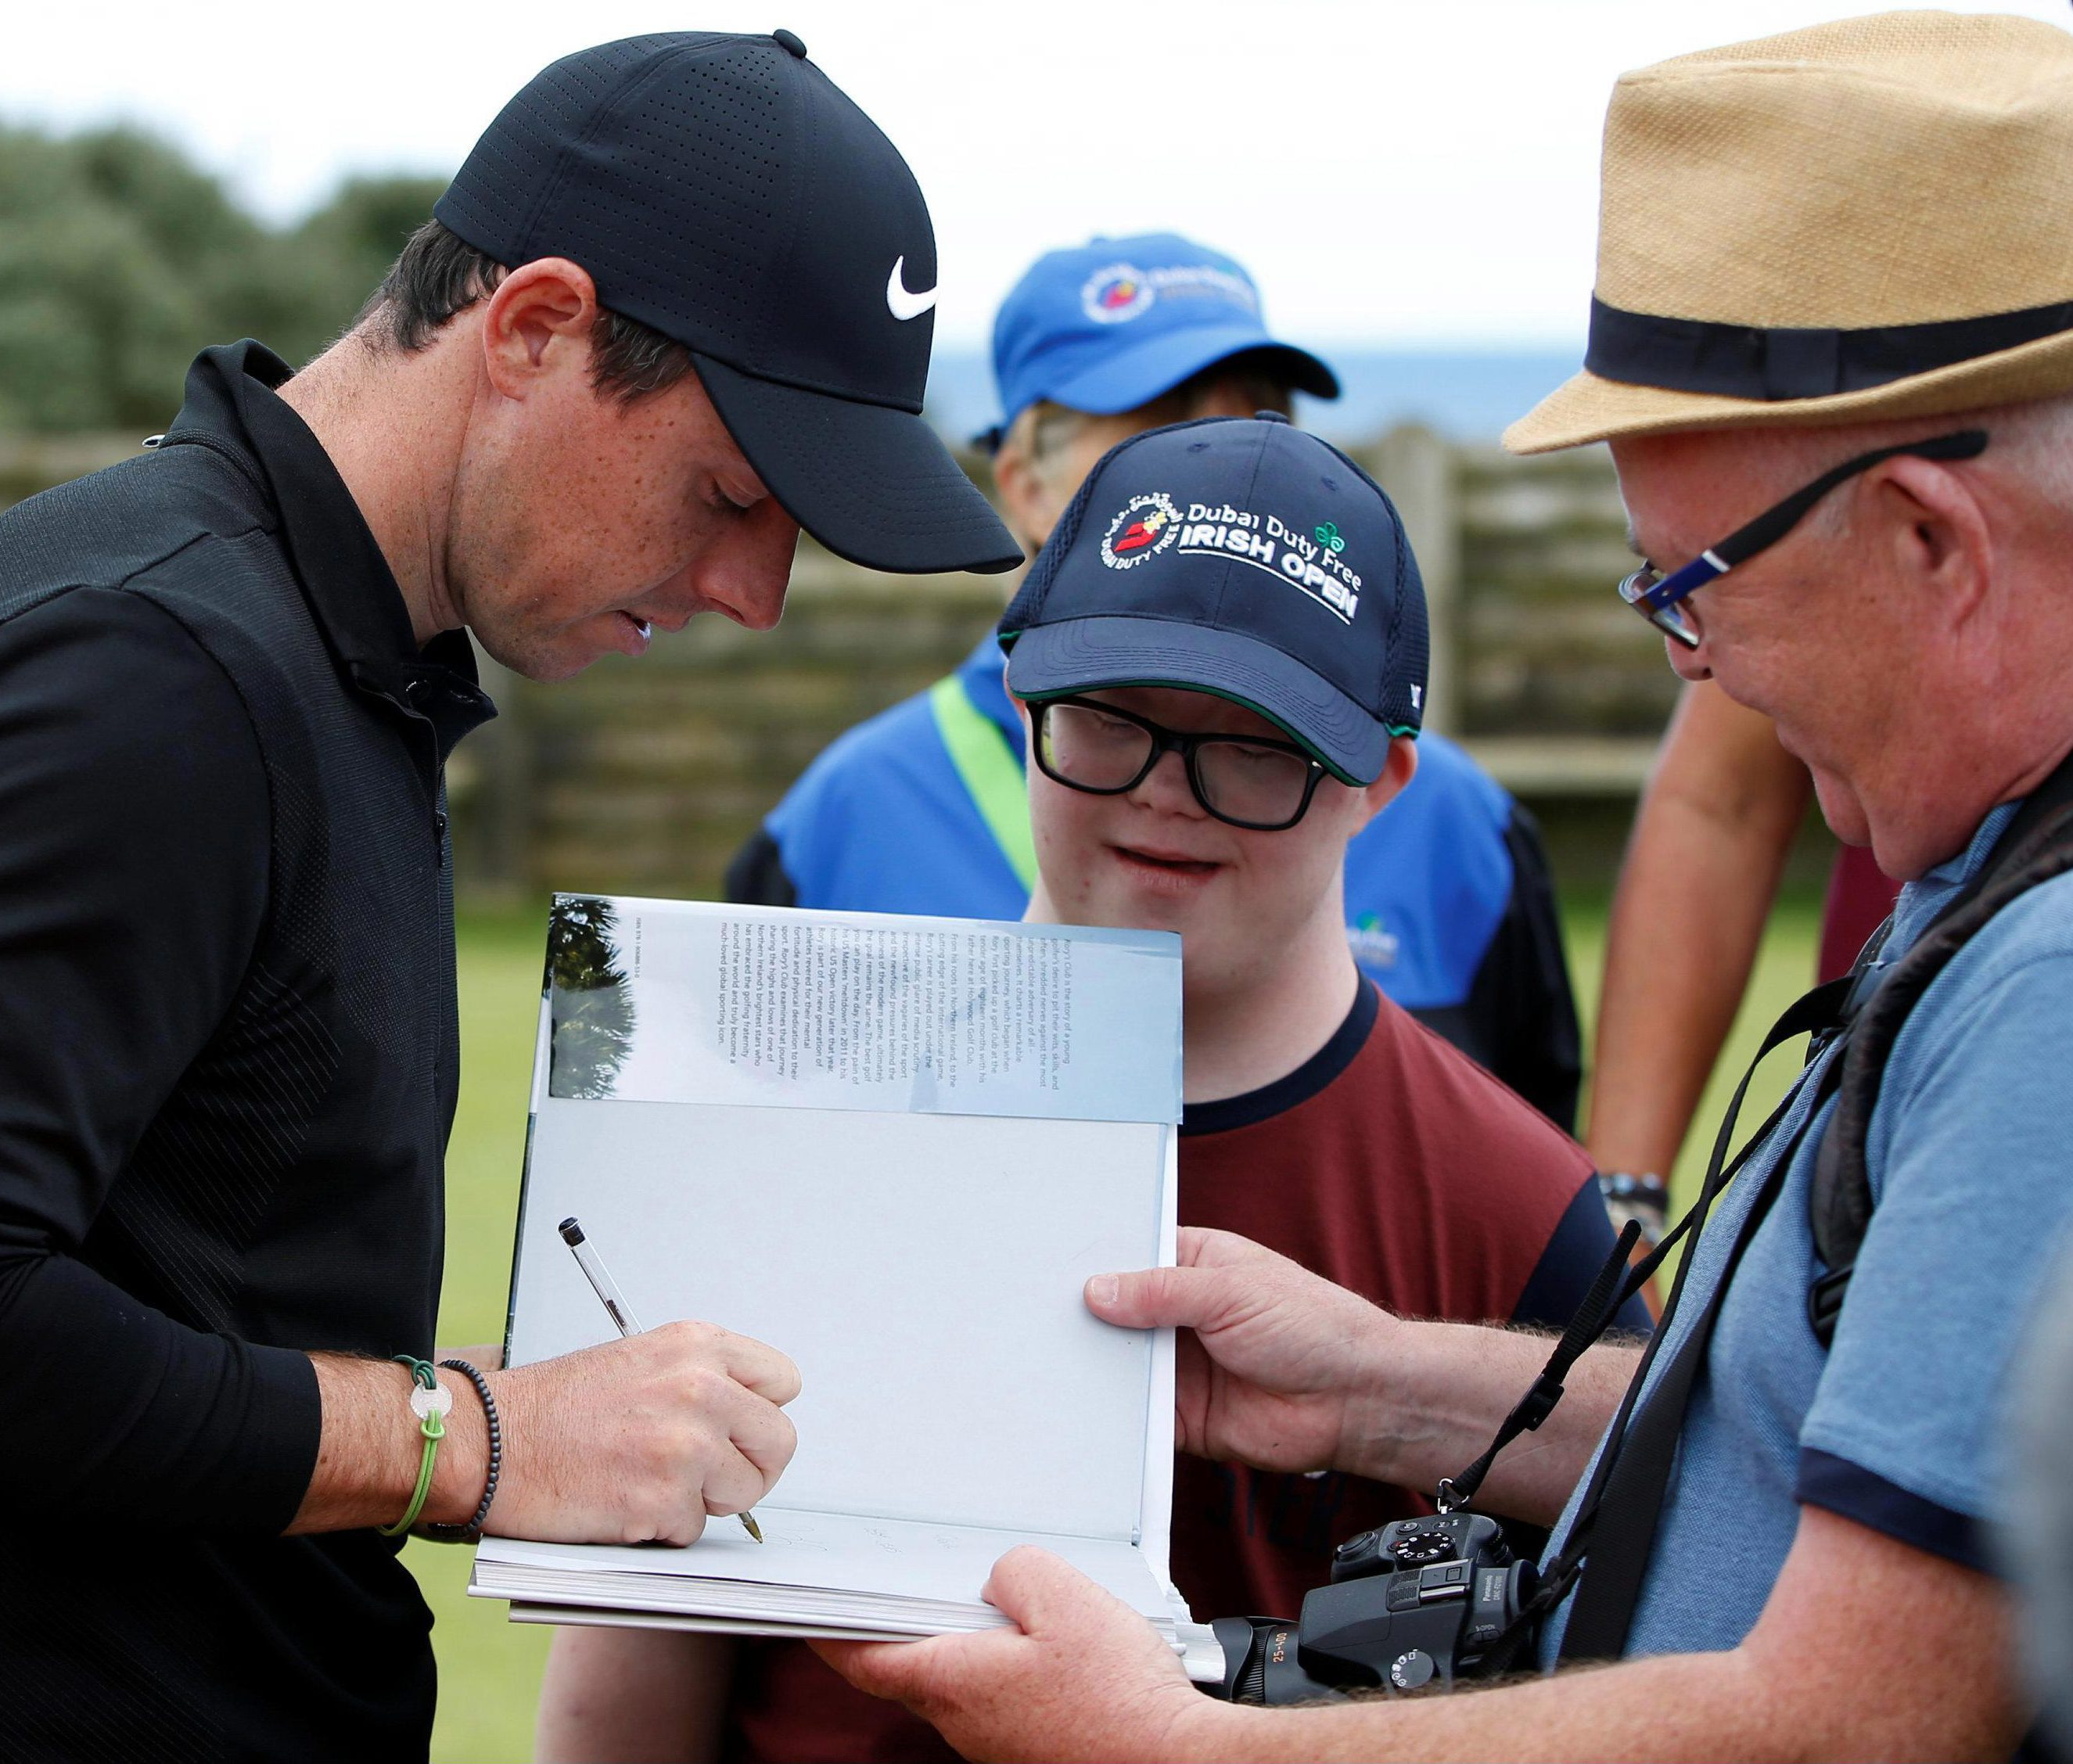 McIlroy says his early interlude with Keane means he is always ready to sign an autograph